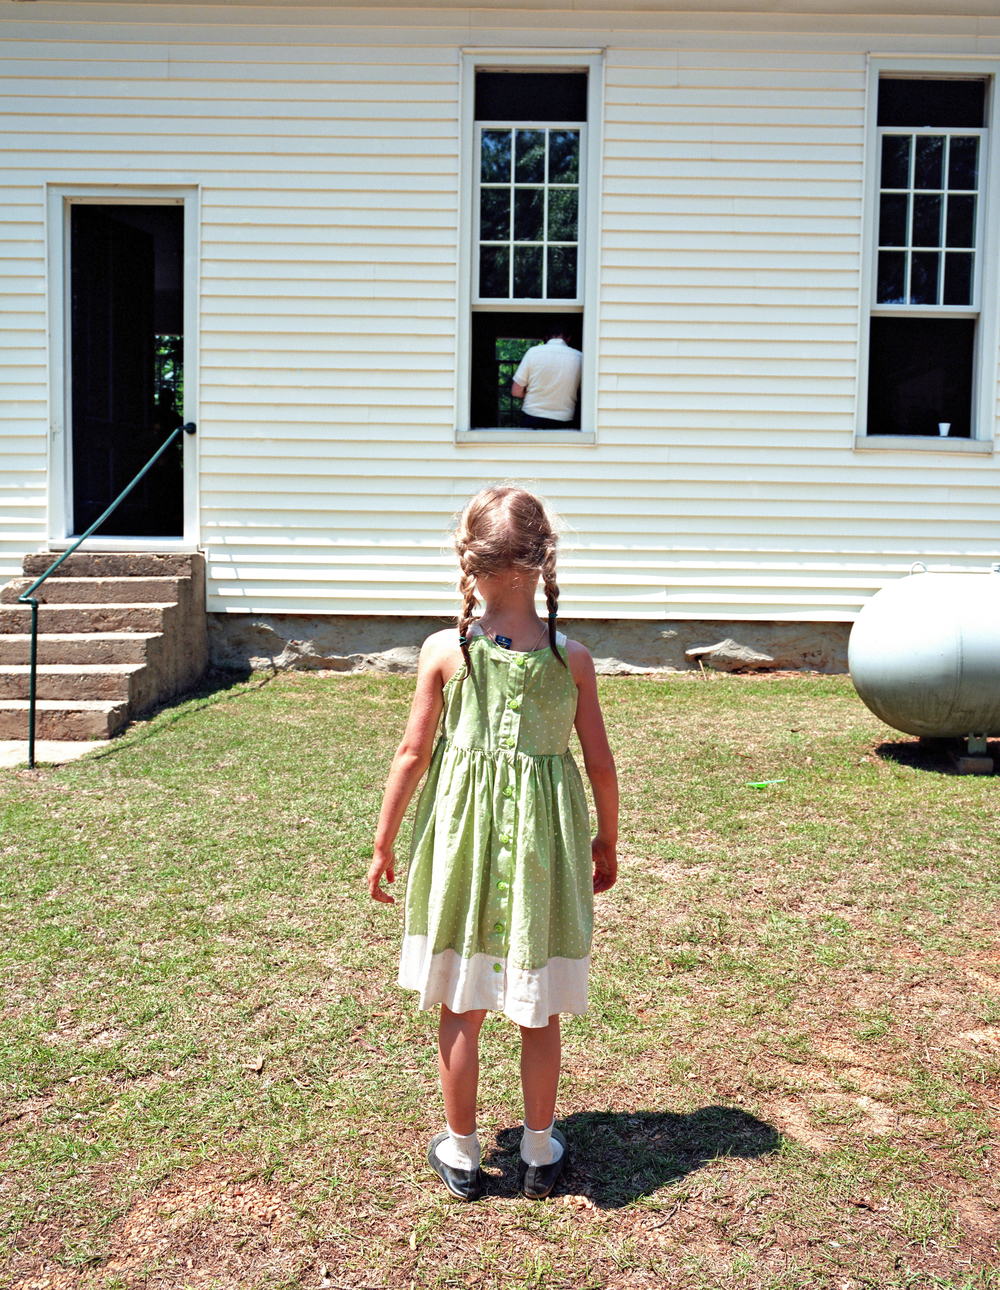 Anna Hinton, Mount Pisgah Church, Stroud AL, 2011.jpg